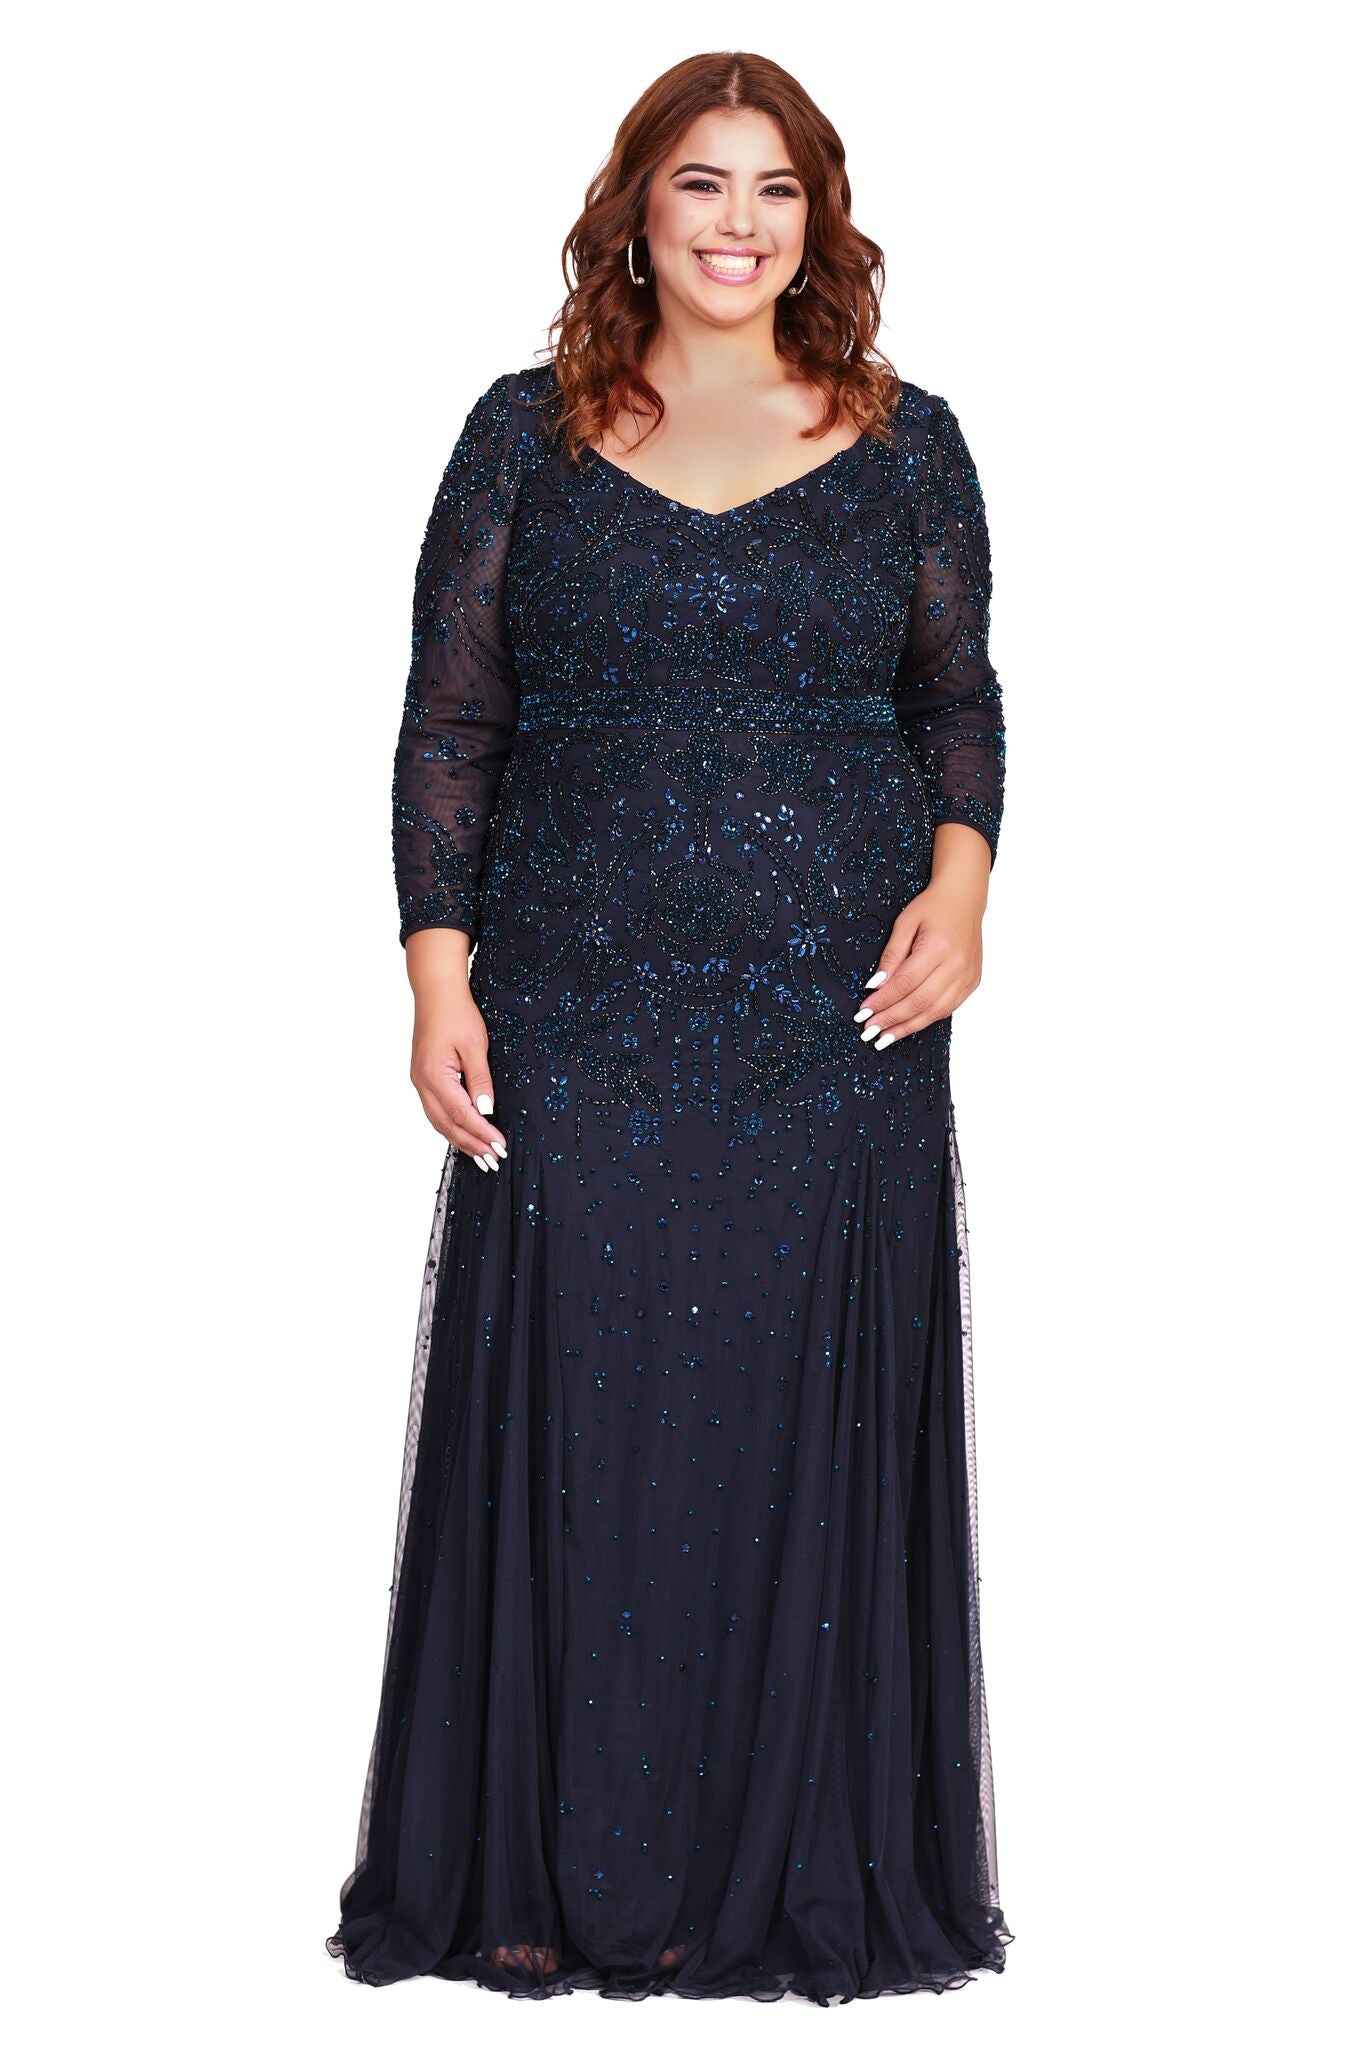 V-Neck Long Sleeve Belted A-Line Style Mother of The Bride Dress Navy 12162W